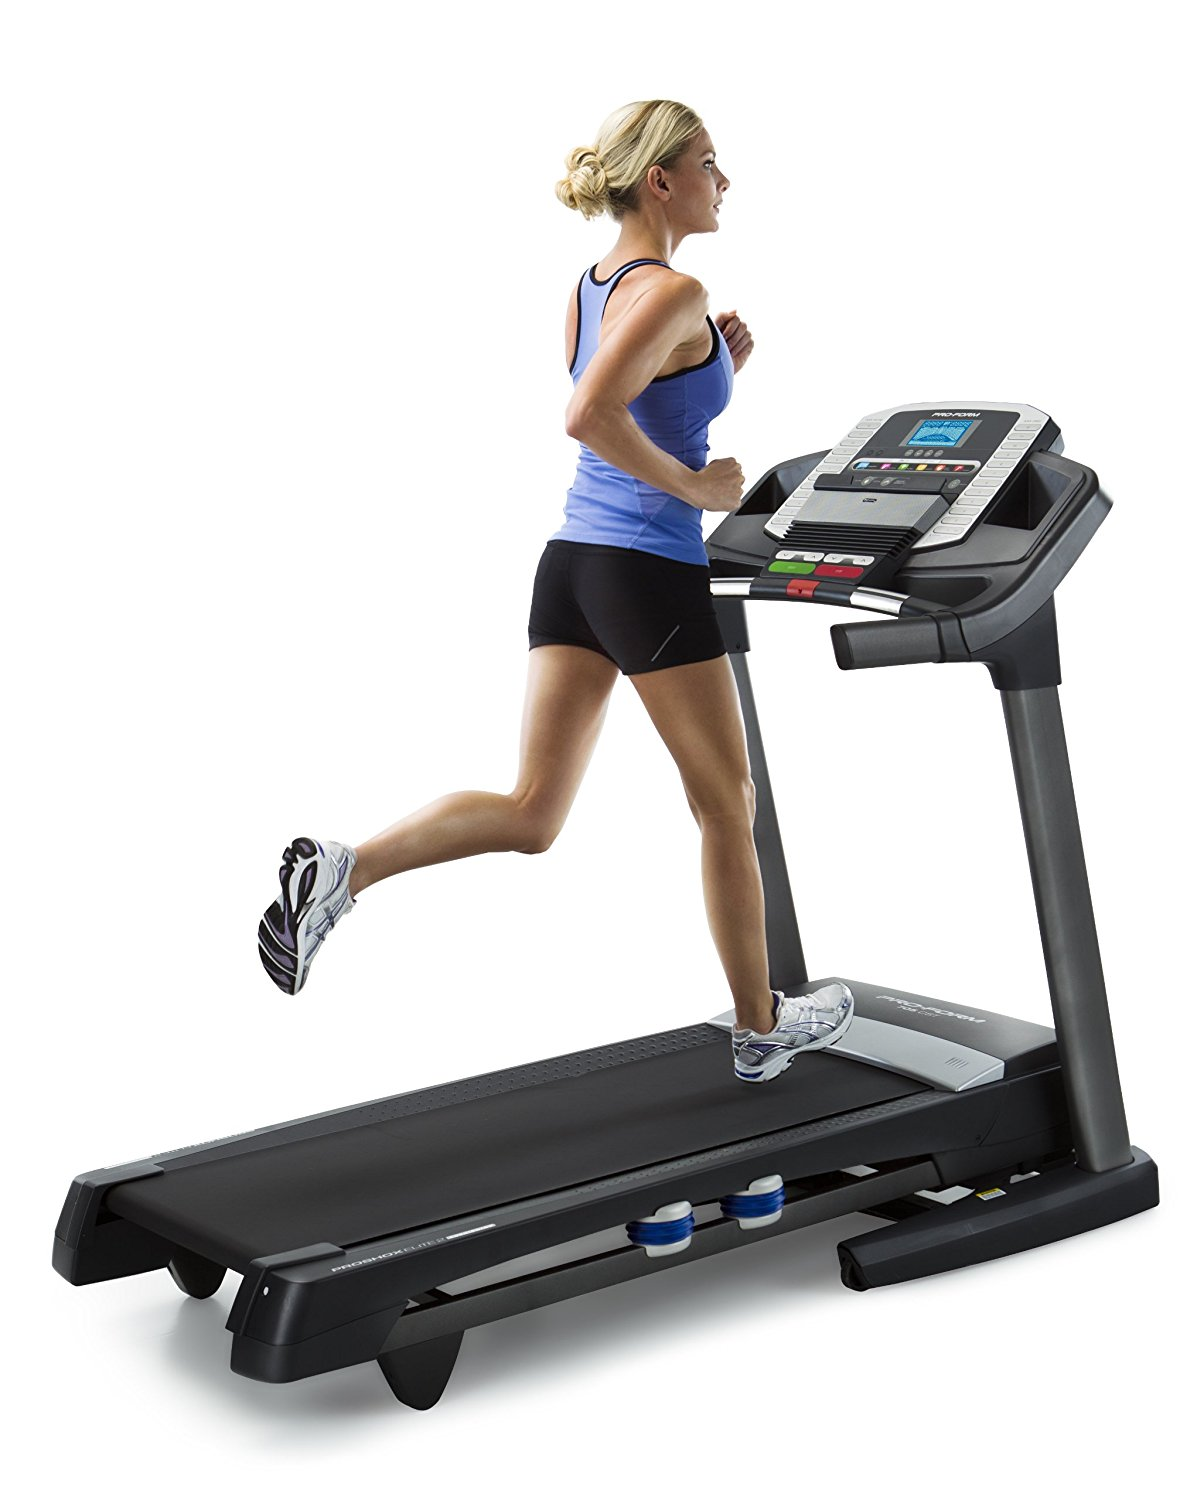 Proform 790 T Treadmill Review